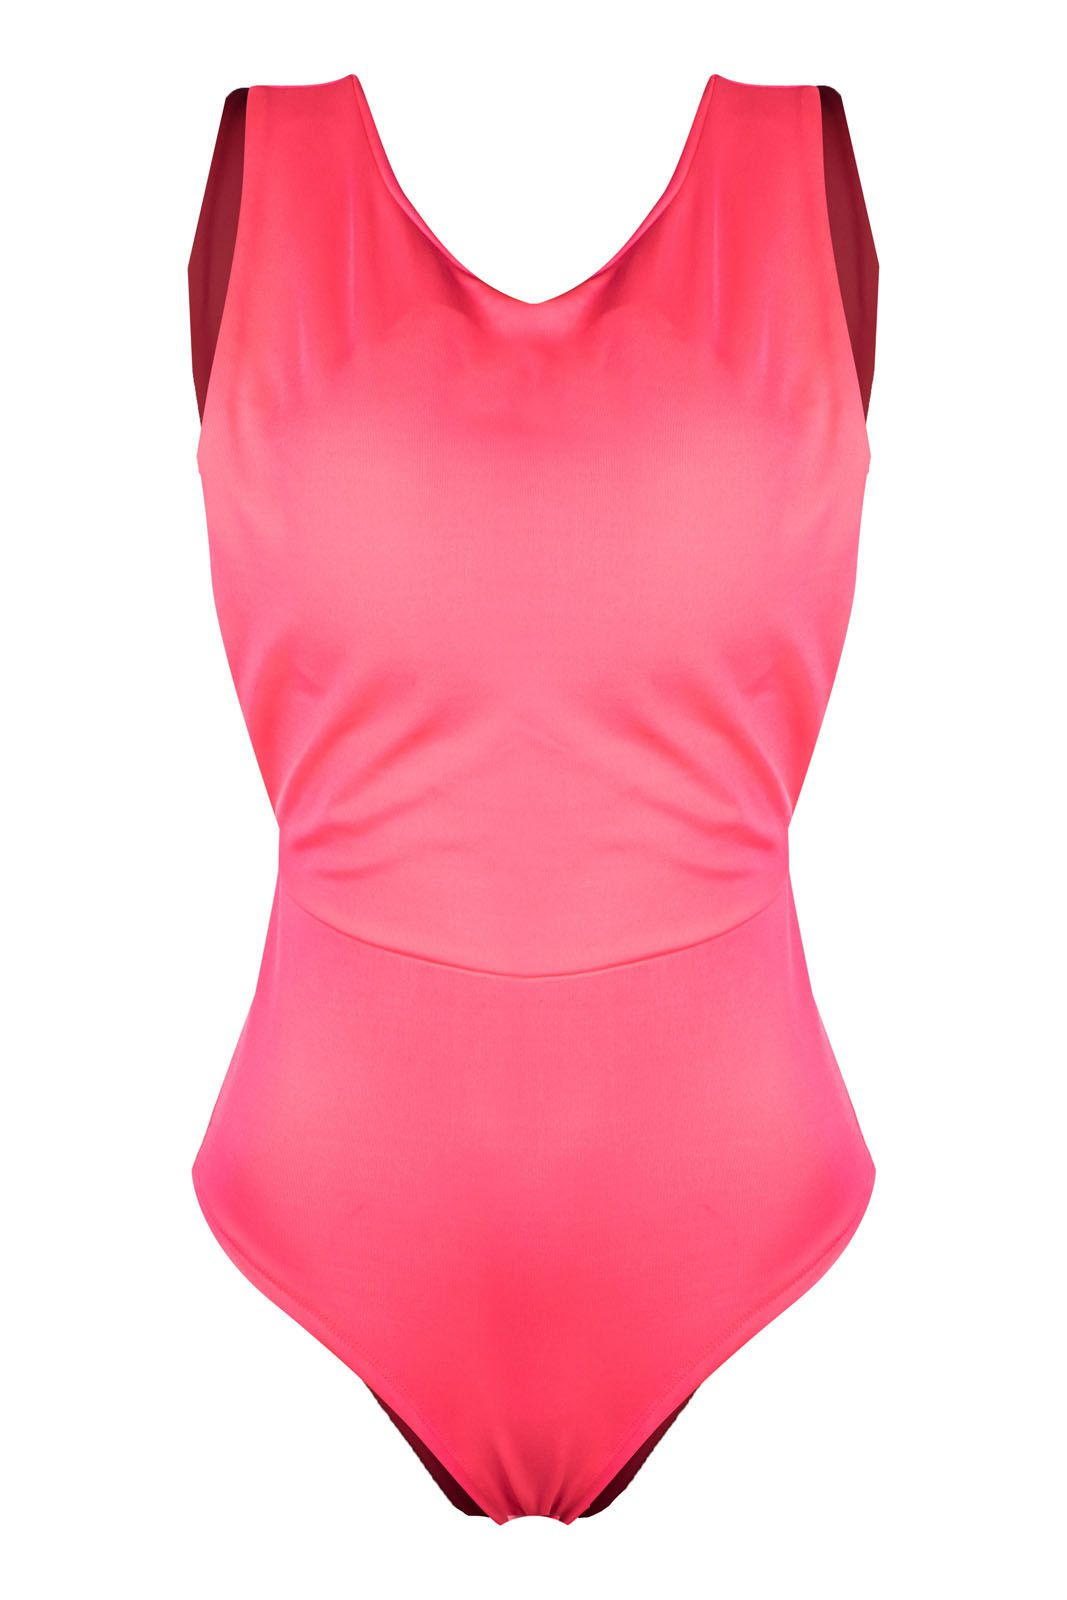 Body Outlet Dri Alça Grossa Neon Color Verão Decote Costas Rosa Neon